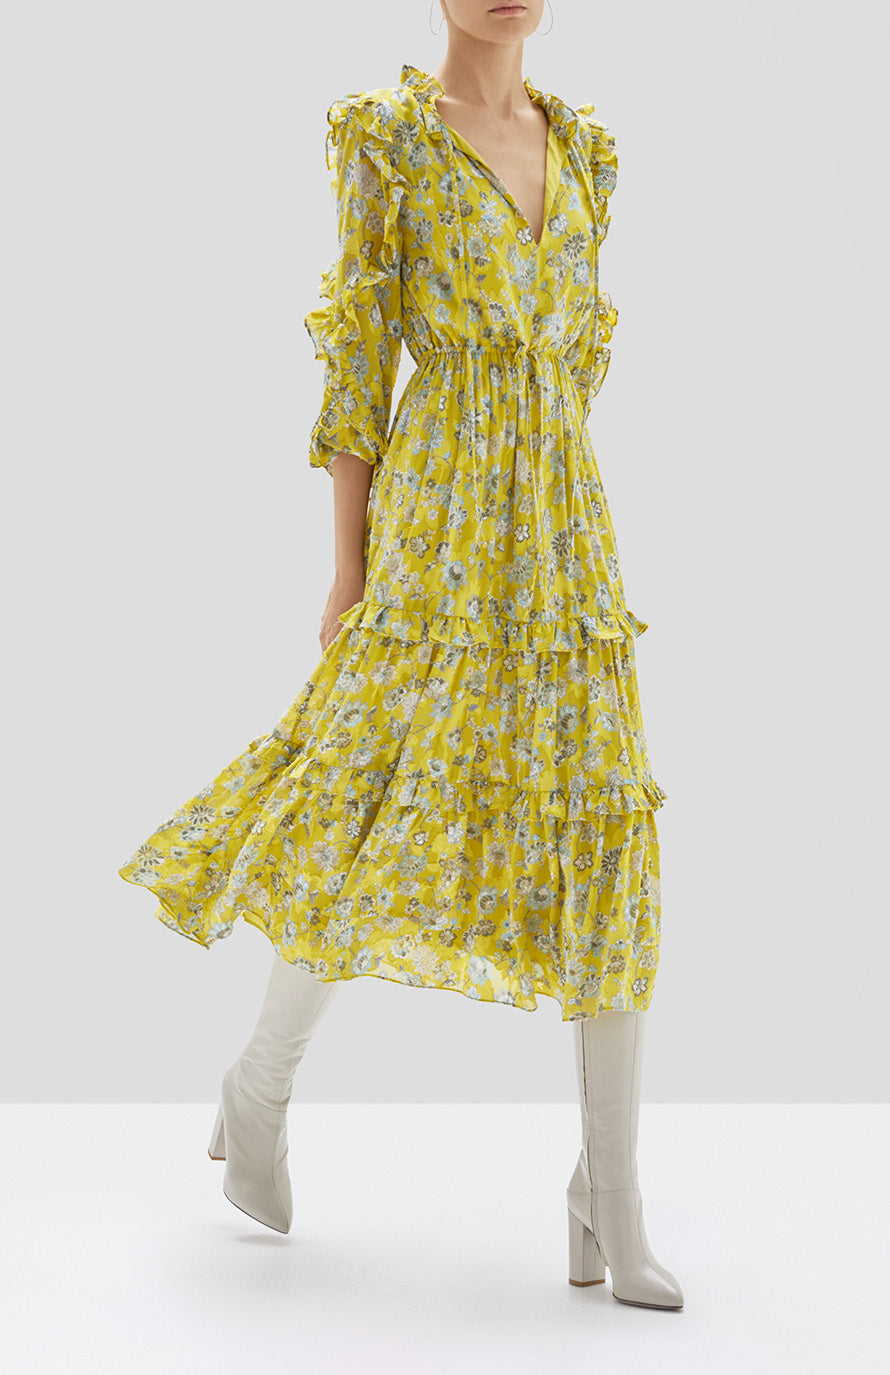 Alexis Auja Dress in Citron Floral from Pre Spring 2020 Collection - Rear View